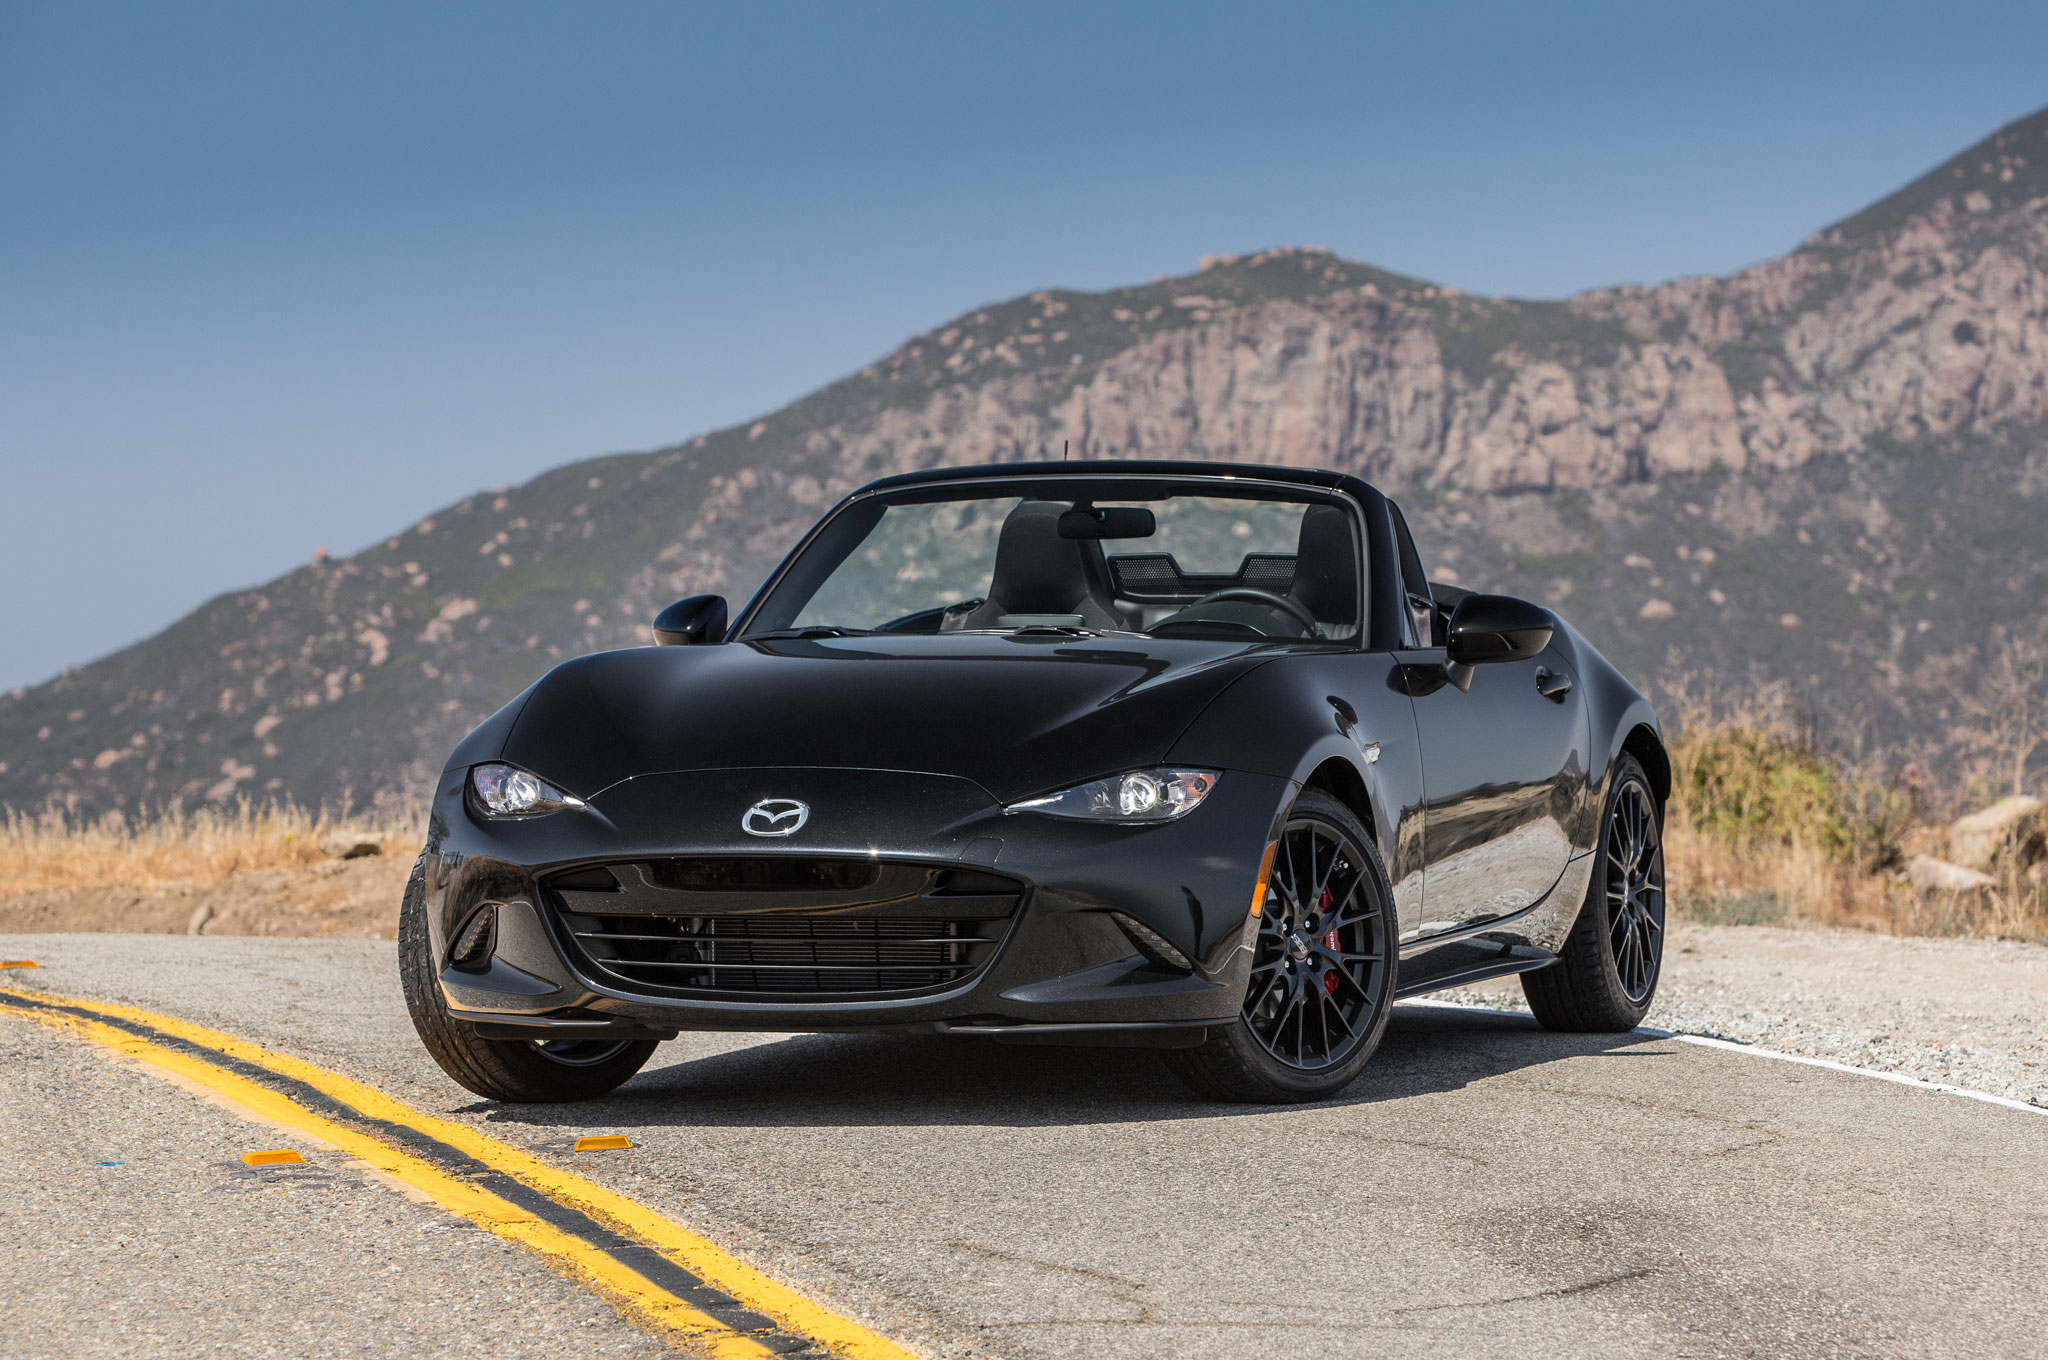 http://st.automobilemag.com/uploads/sites/11/2015/06/2016-Mazda-MX-5-Miata-Club-front-three-quarter-02.jpg